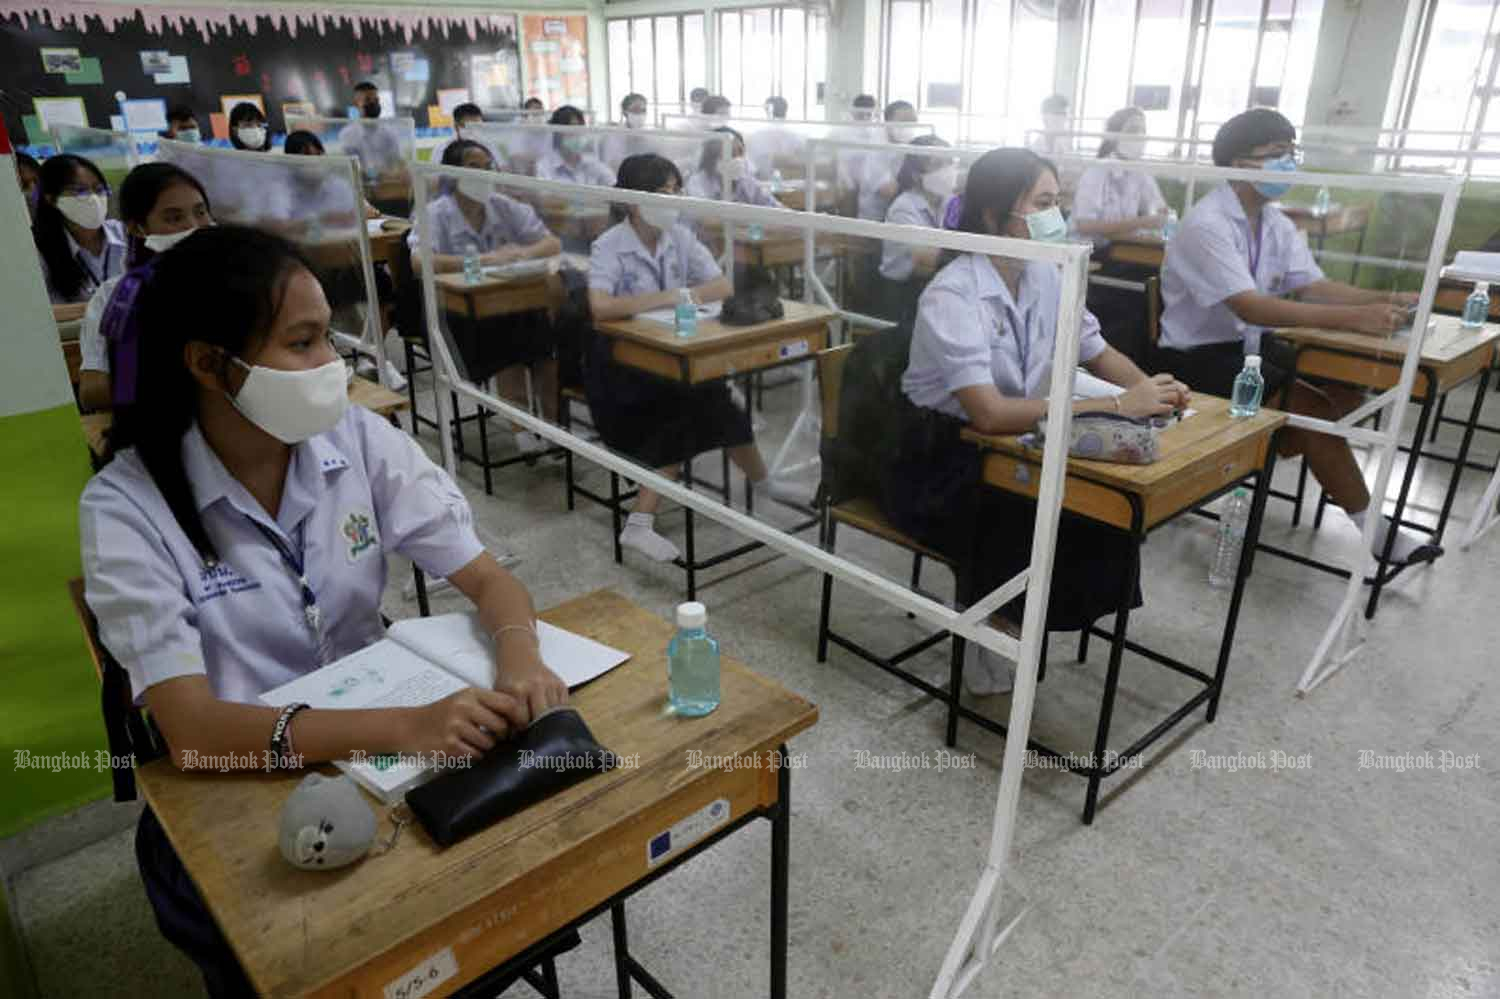 Education ministry to push for full school opening